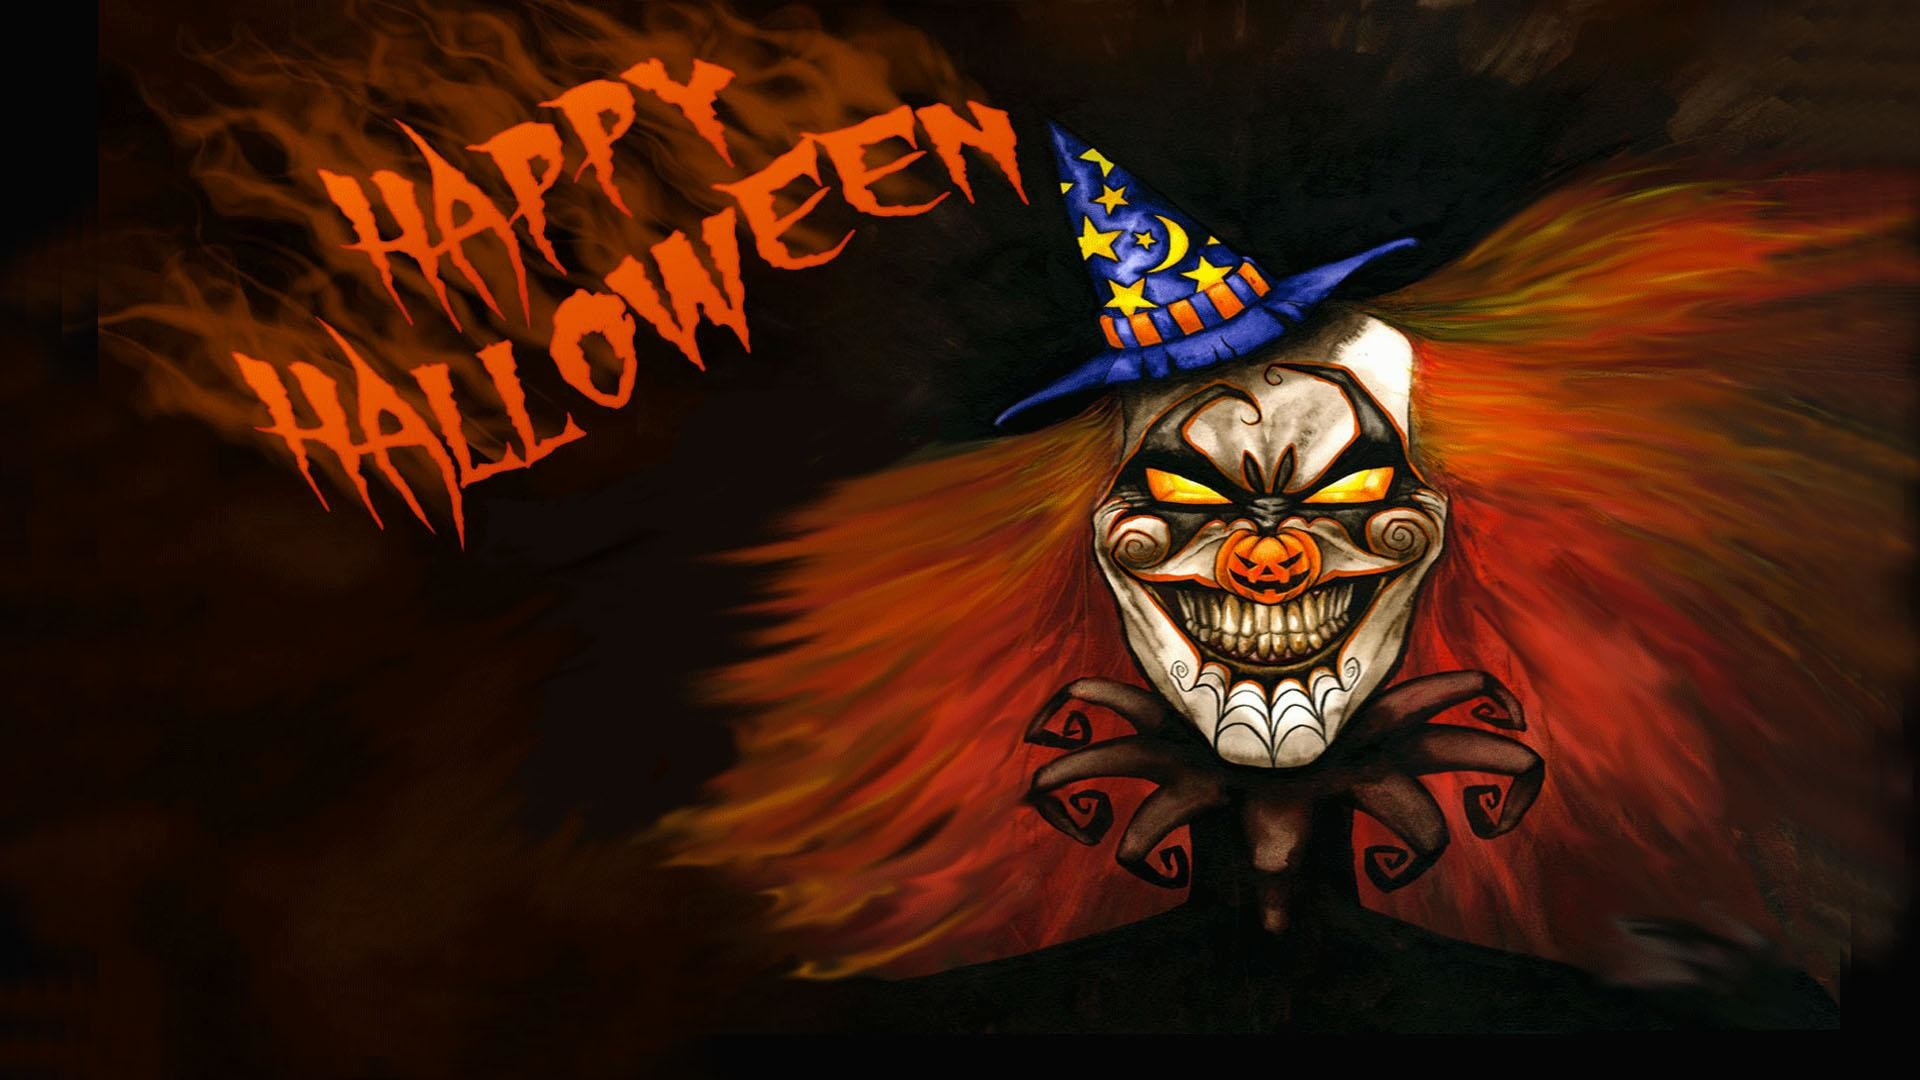 Res: 1920x1080, 10. scary-clown-wallpaper-HD10-600x338